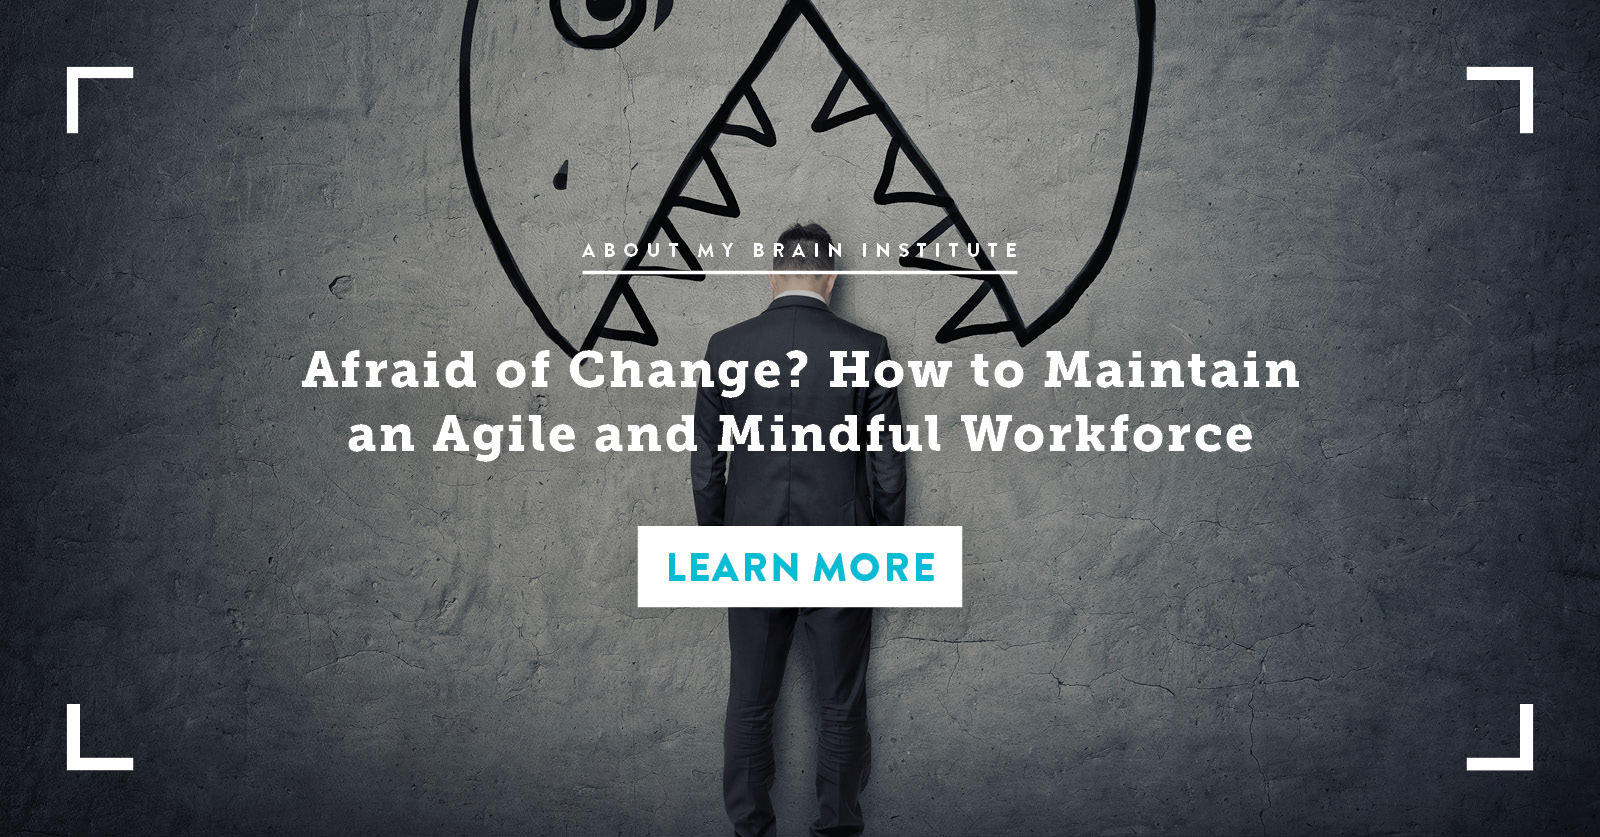 Afraid Of Change? How To Maintain An Agile and Mindful Workforce